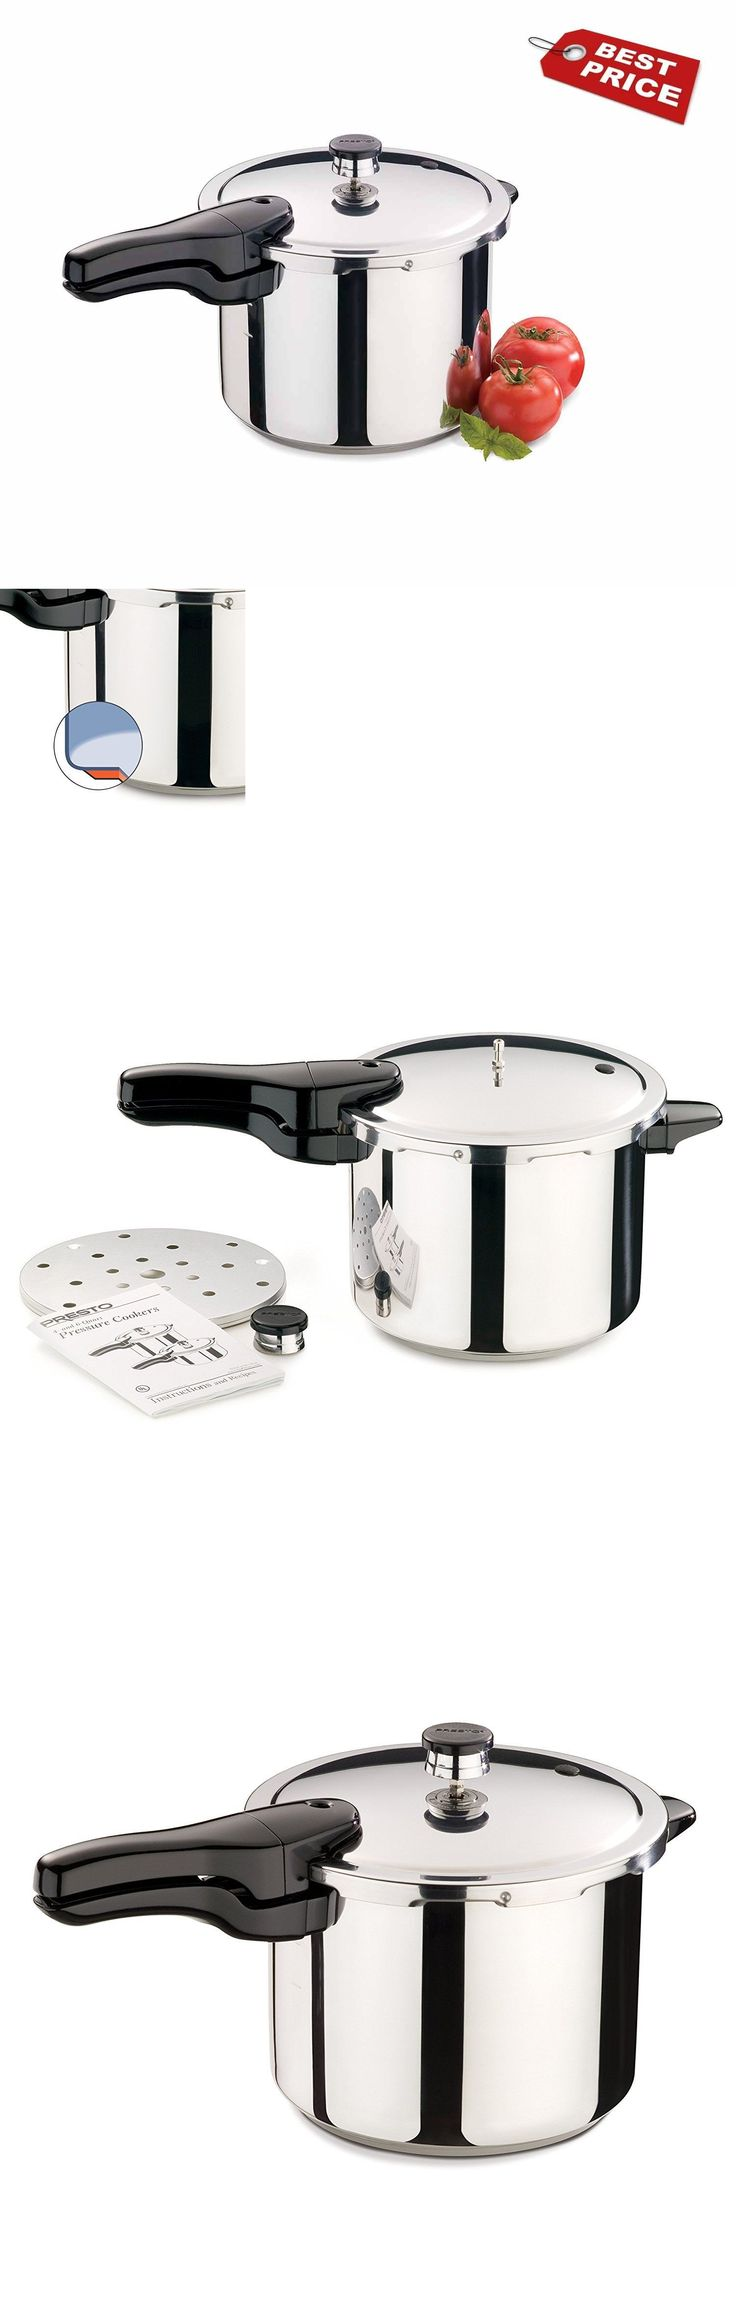 Small Kitchen Appliances: New Presto 01362 6-Quart Stainless Steel Pressure Cooker *Usa* -> BUY IT NOW ONLY: $47.29 on eBay!